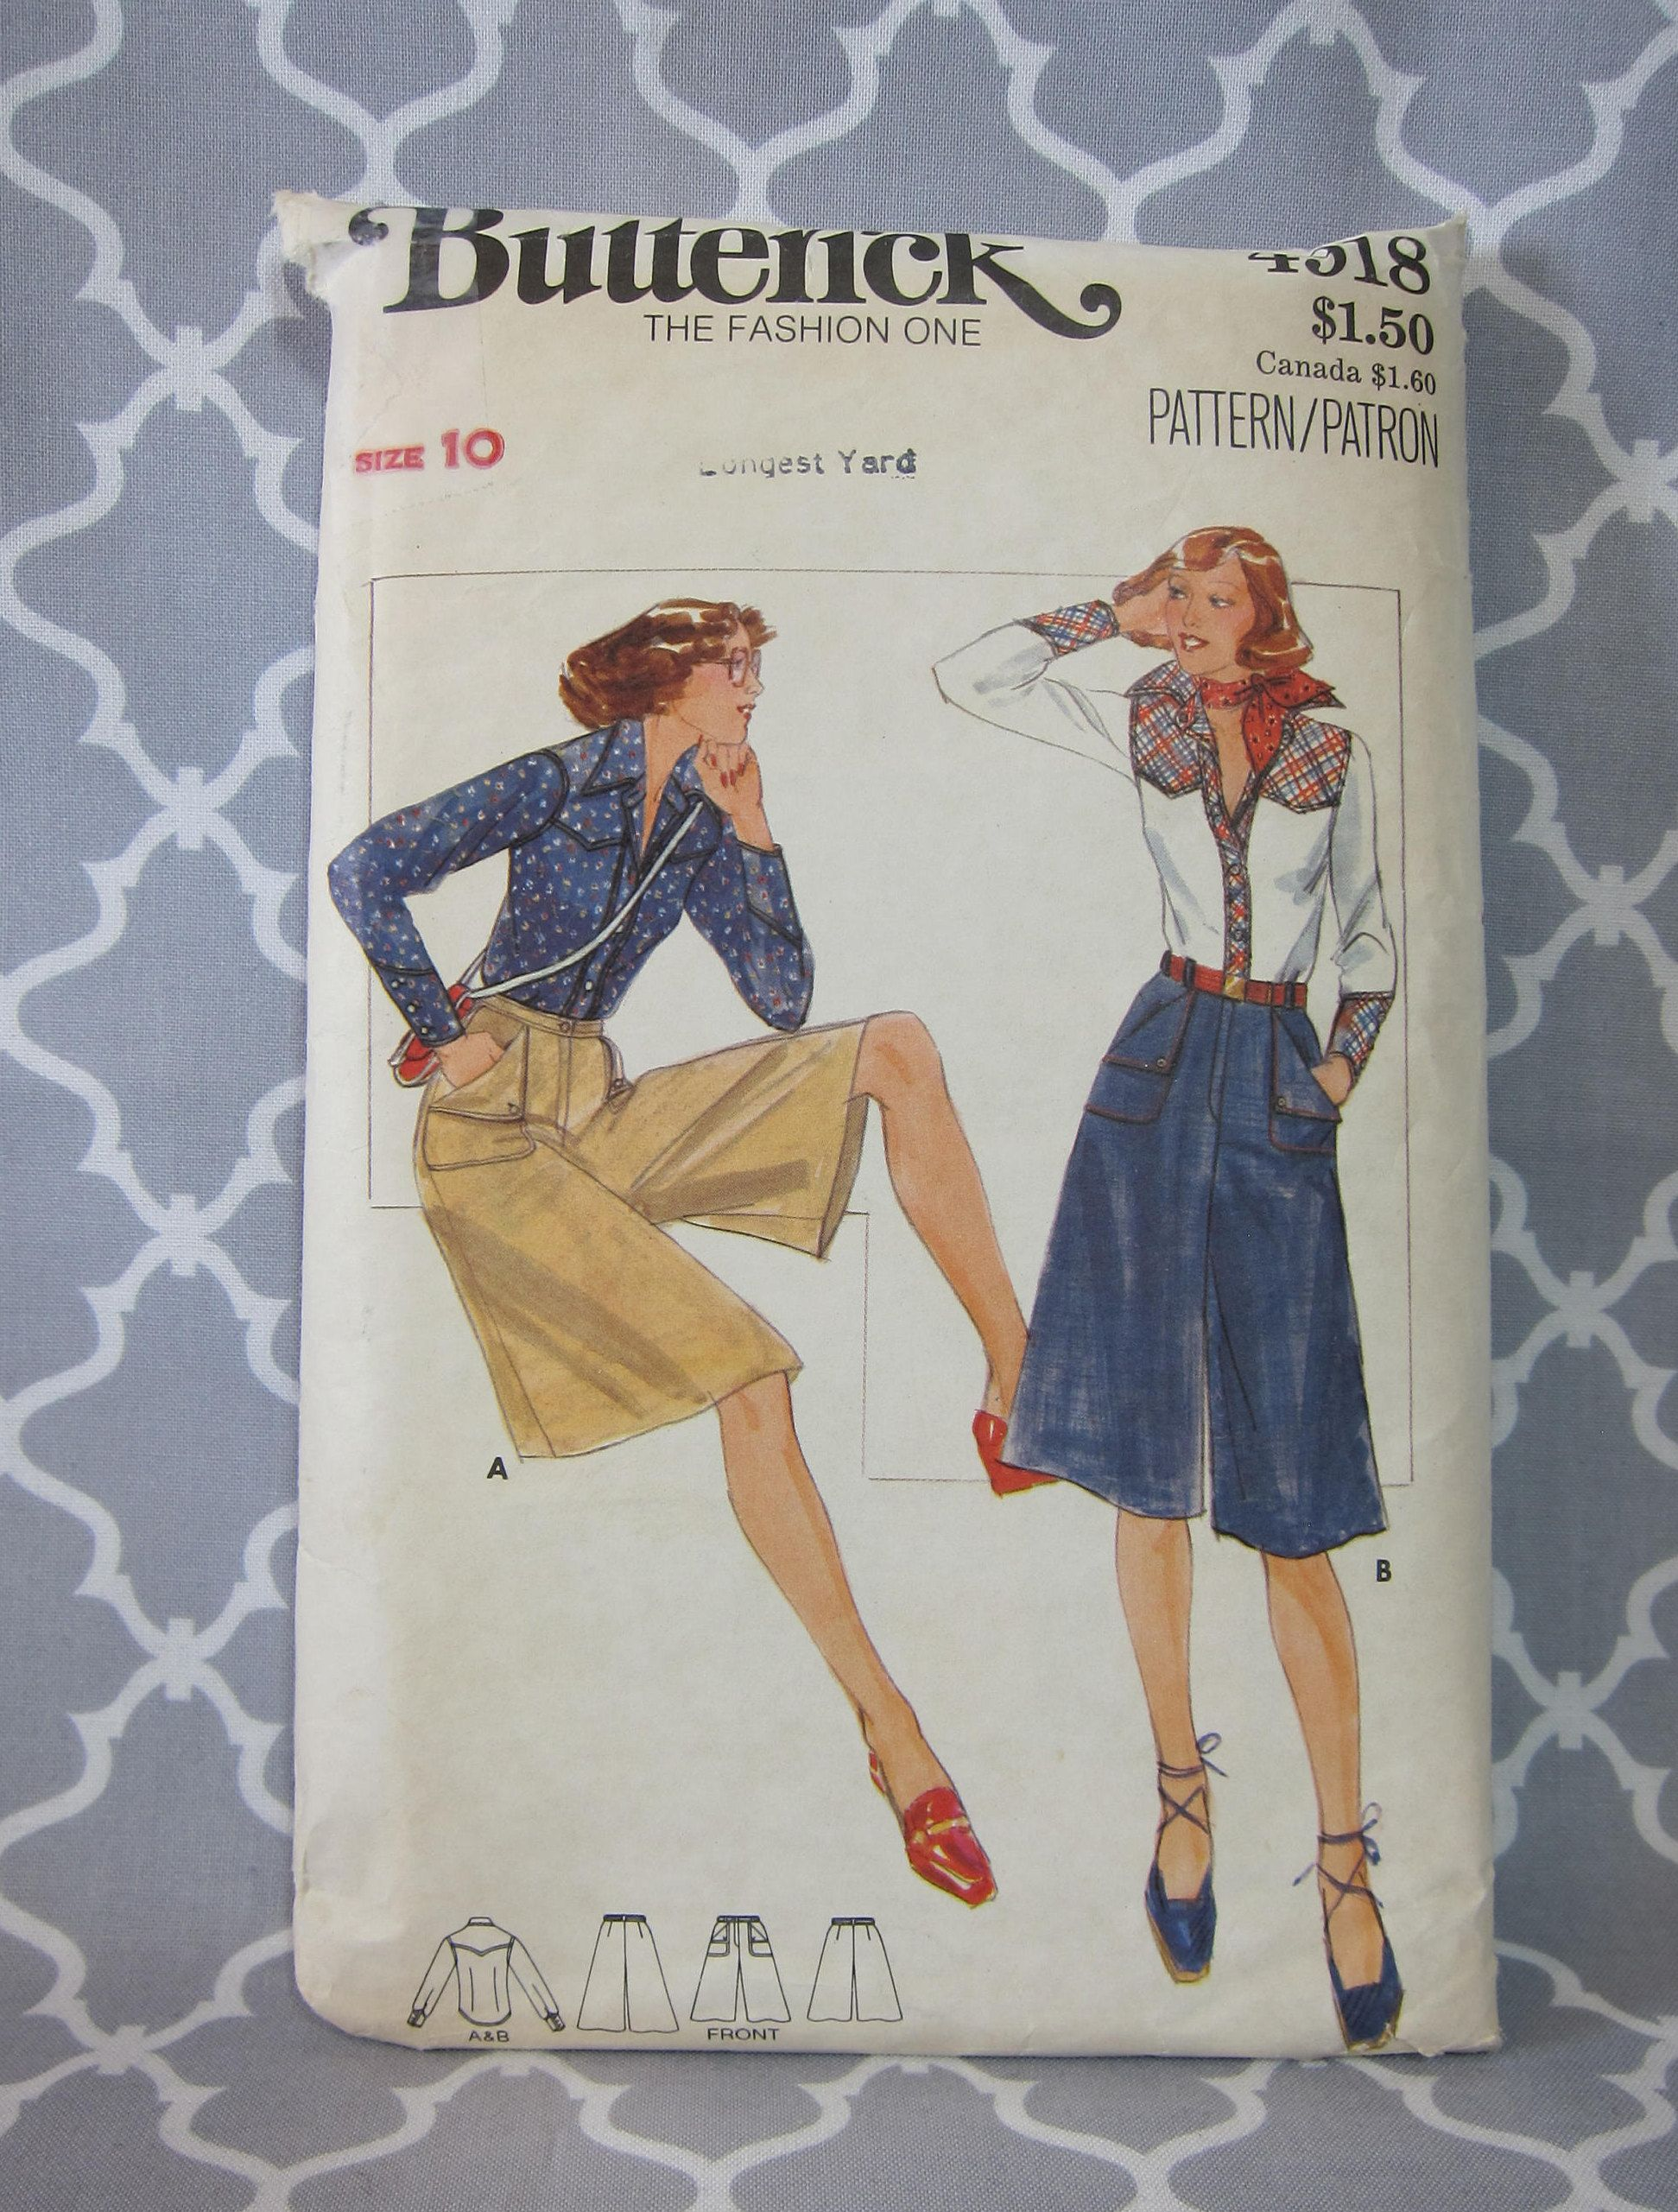 Cheapest Shipping. Vintage Culottes and Western Shirt Pattern. Butterick 4918. Size 10. Incut, Complete by FashionSew on Etsy